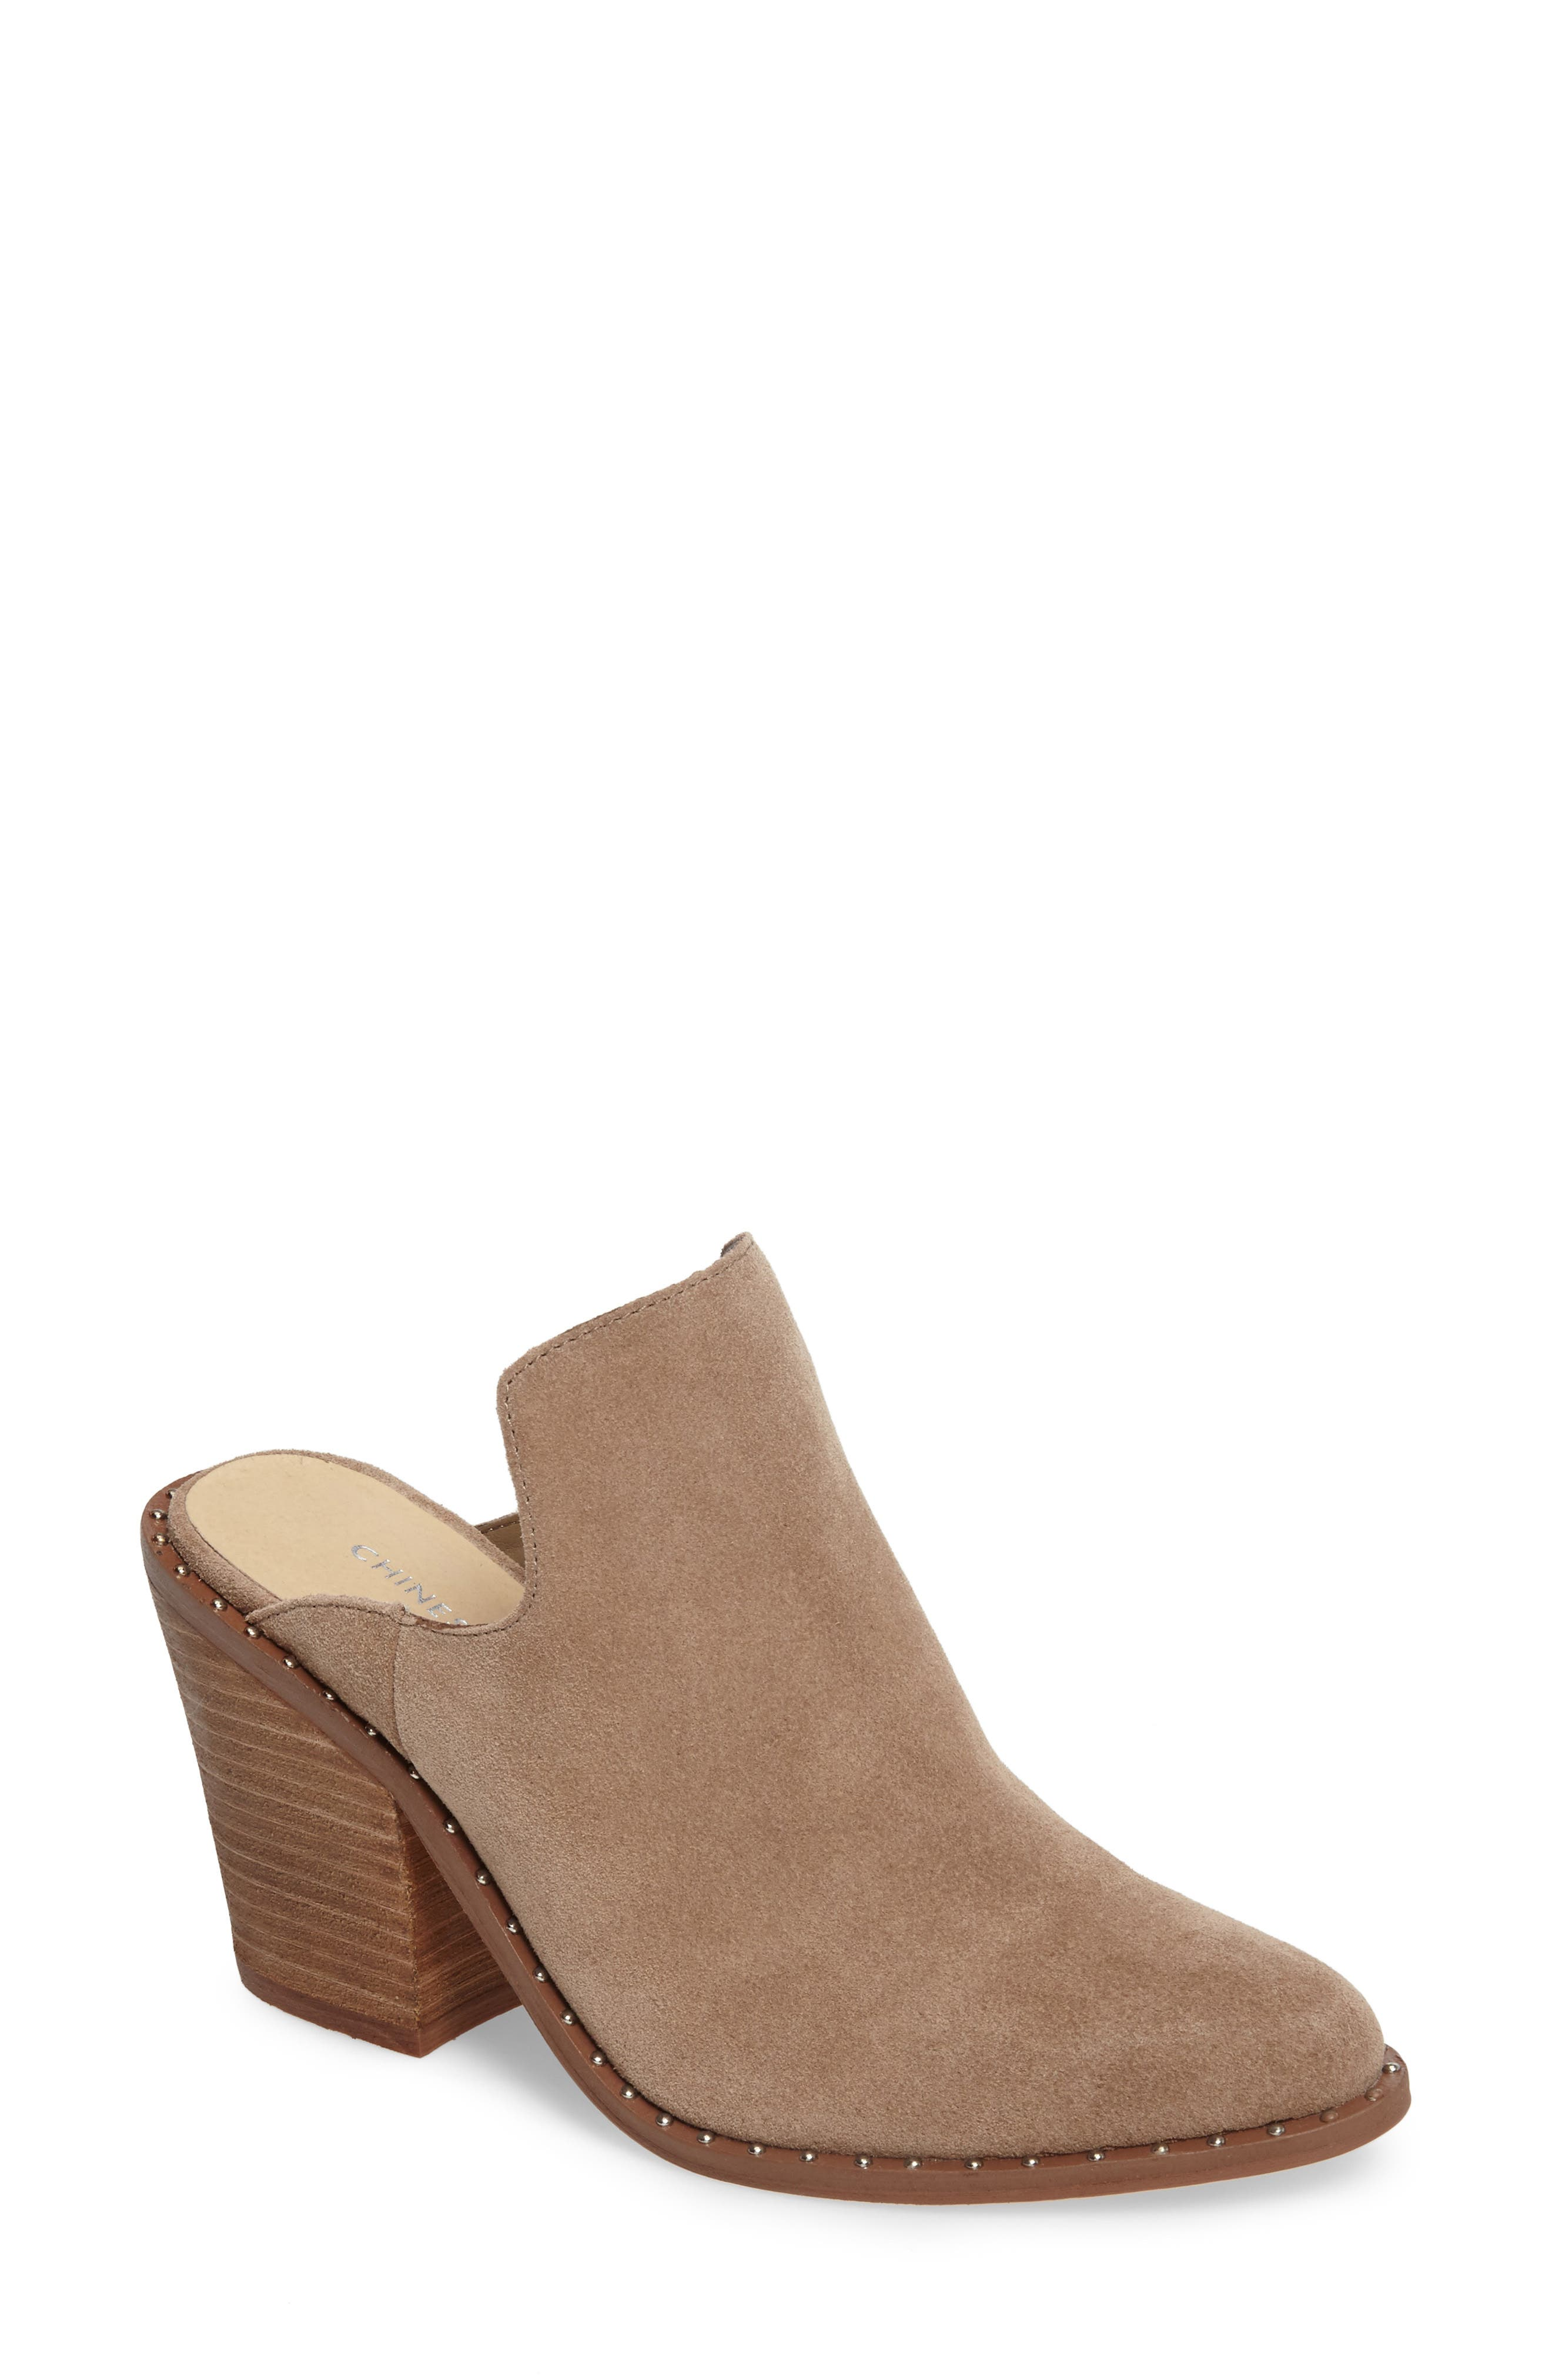 Alternate Image 1 Selected - Chinese Laundry Springfield Mule Bootie (Women)